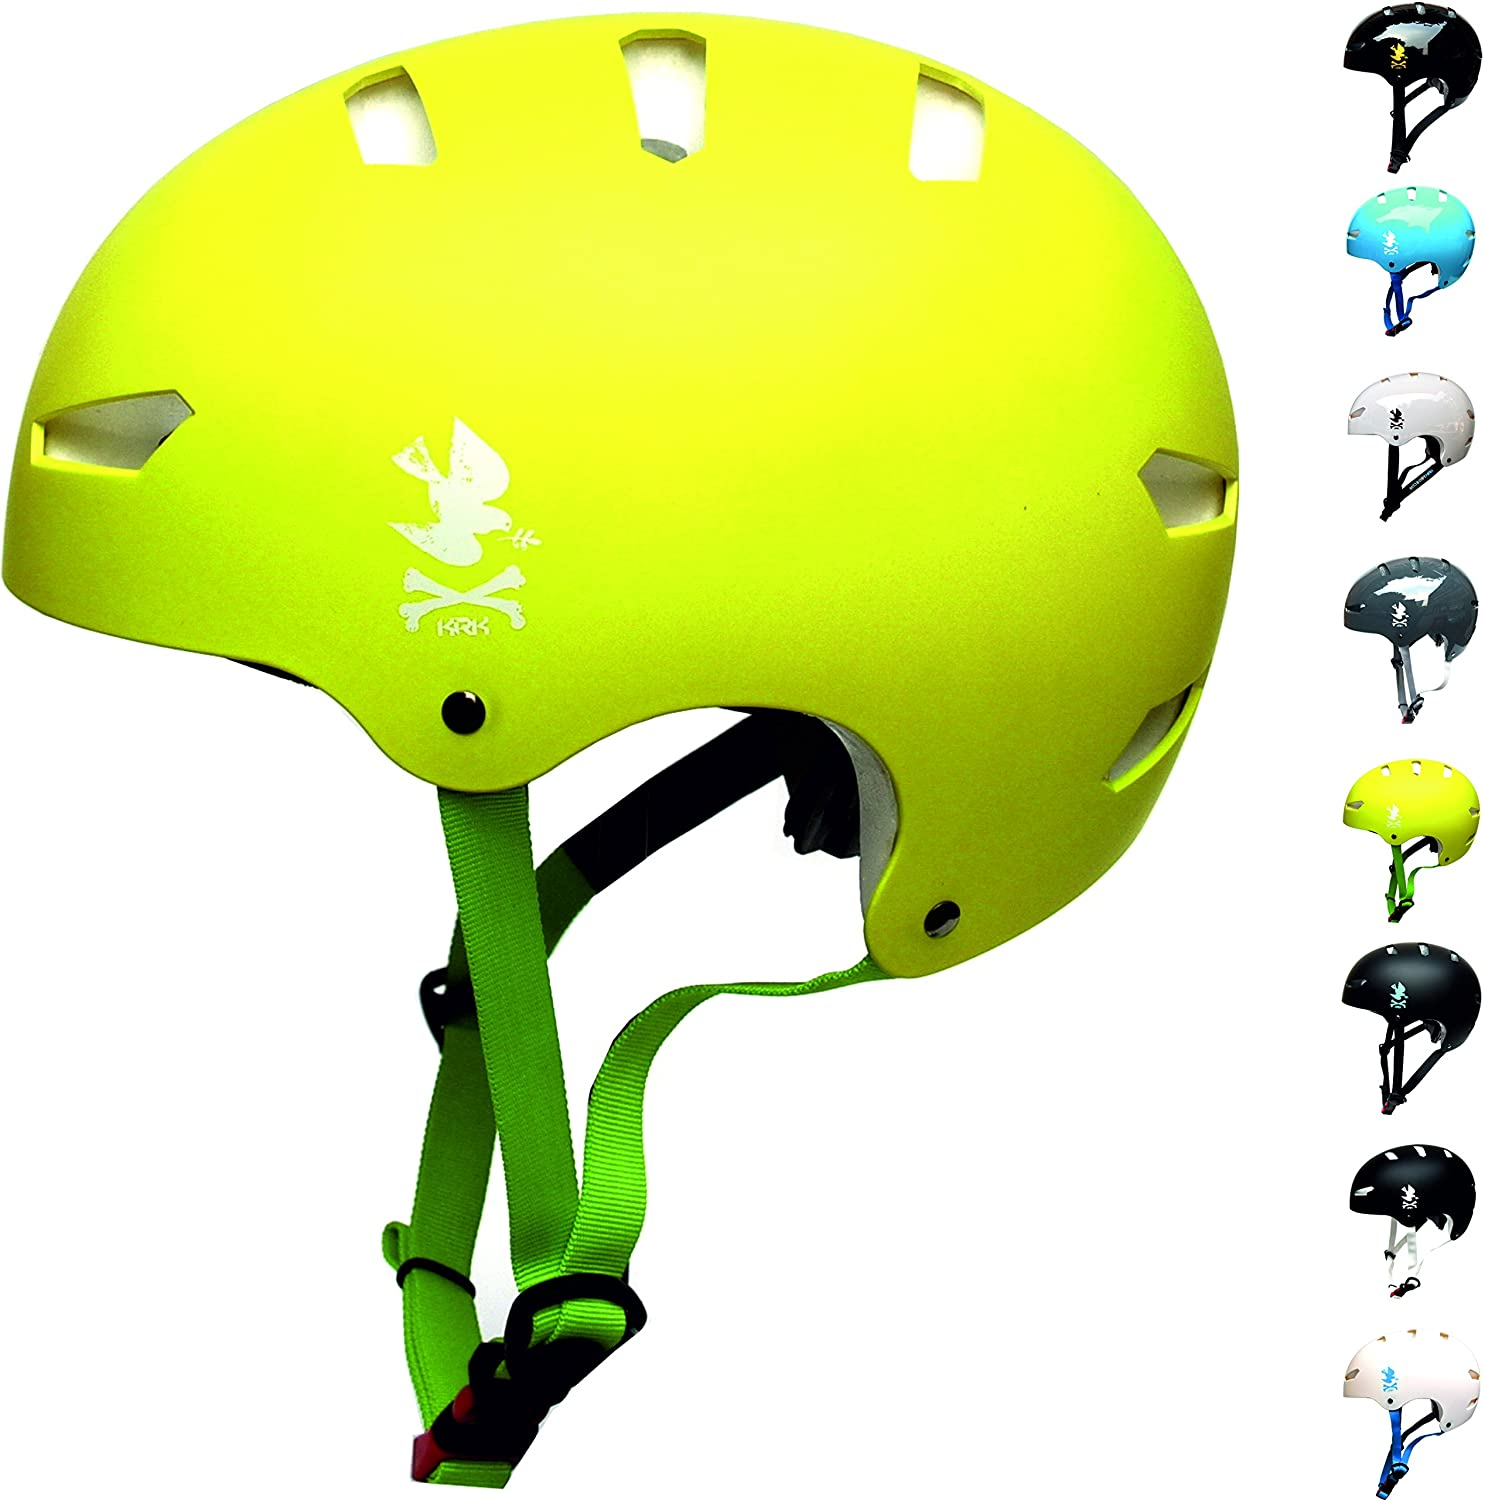 KRKpro tection | NoPeace | Cycling Bike Helmet | Roller, Skate, Inline Skating, BMX, MTB, Dirt | Many Colors | S/M L/XL